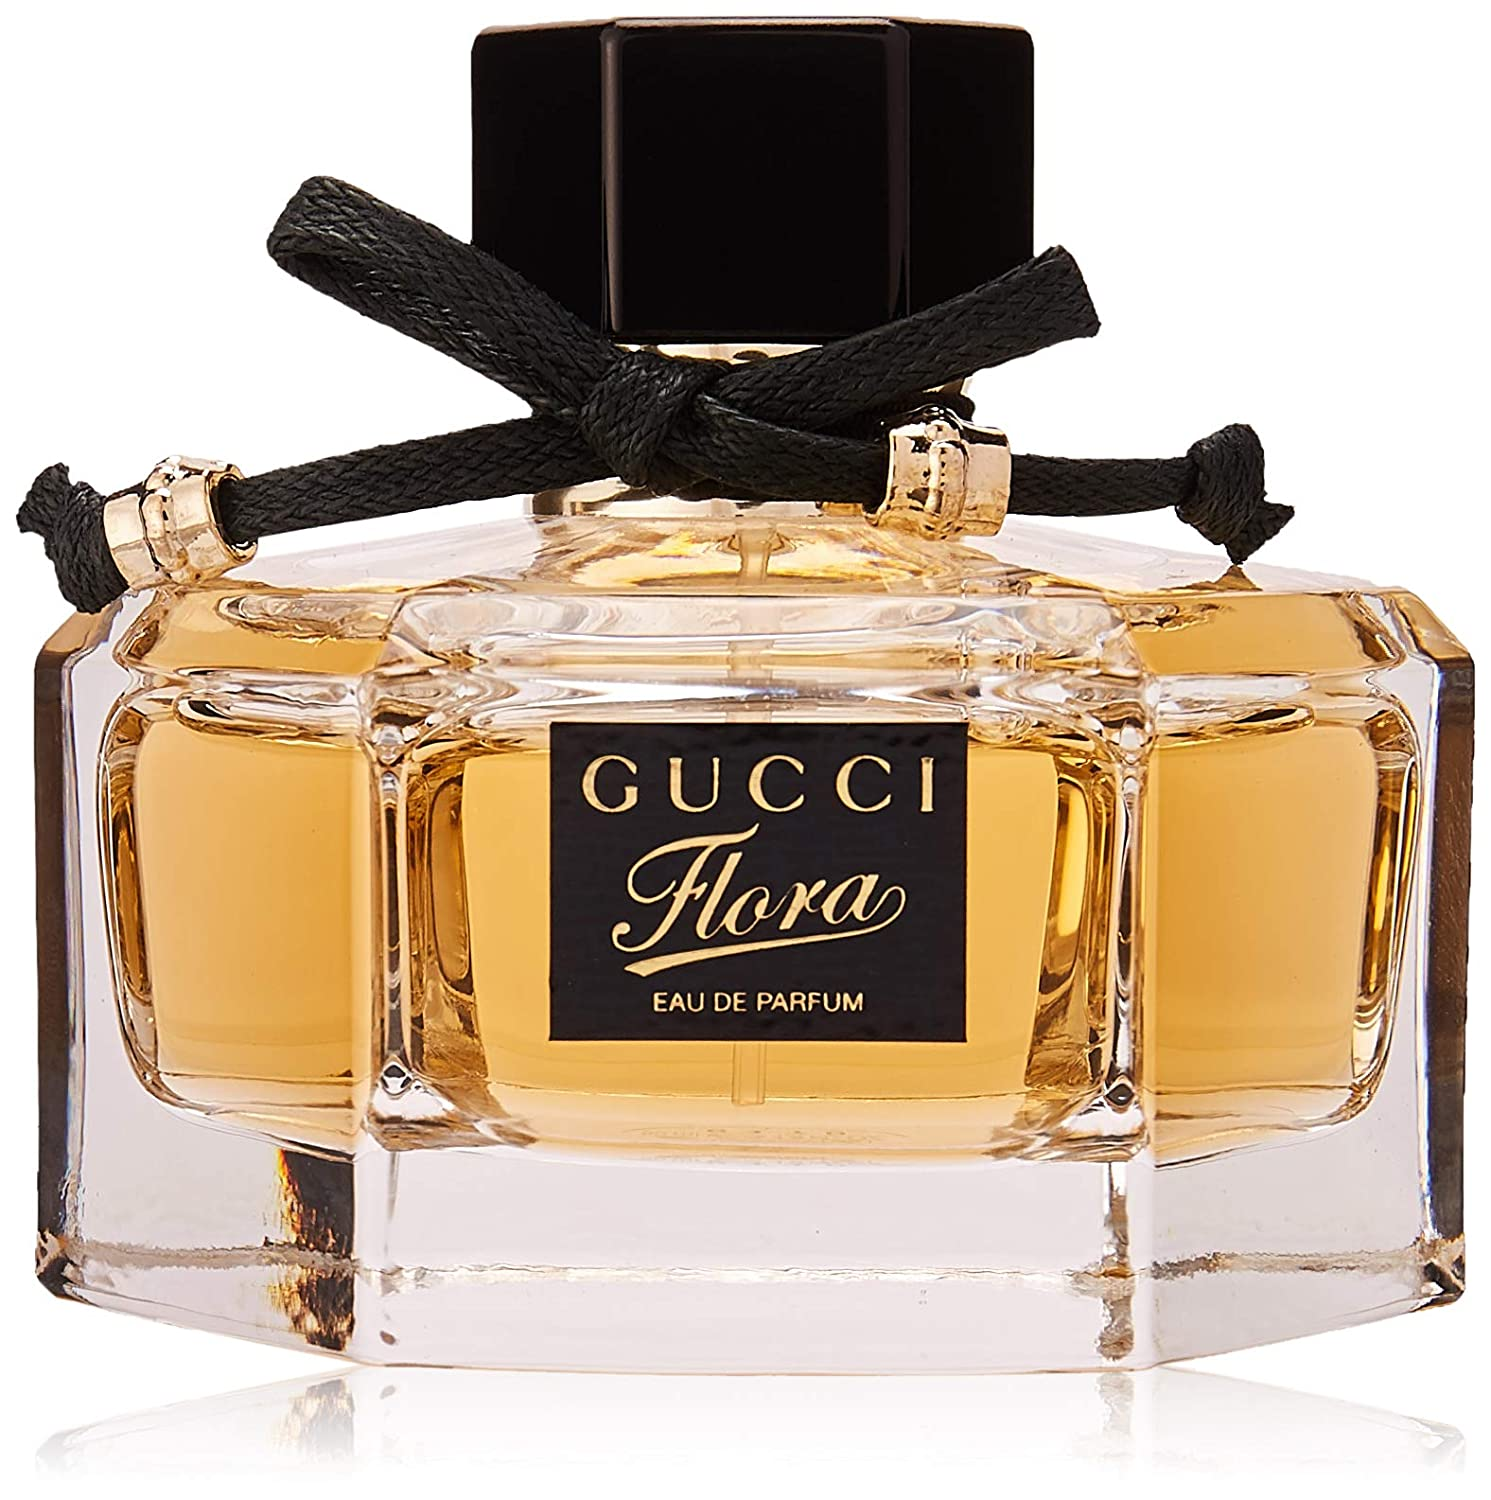 5021b72d8 Amazon.com : Flora by Gucci by Gucci for Women - EDP Spray, 1.6 oz : Gucci  Edp : Beauty